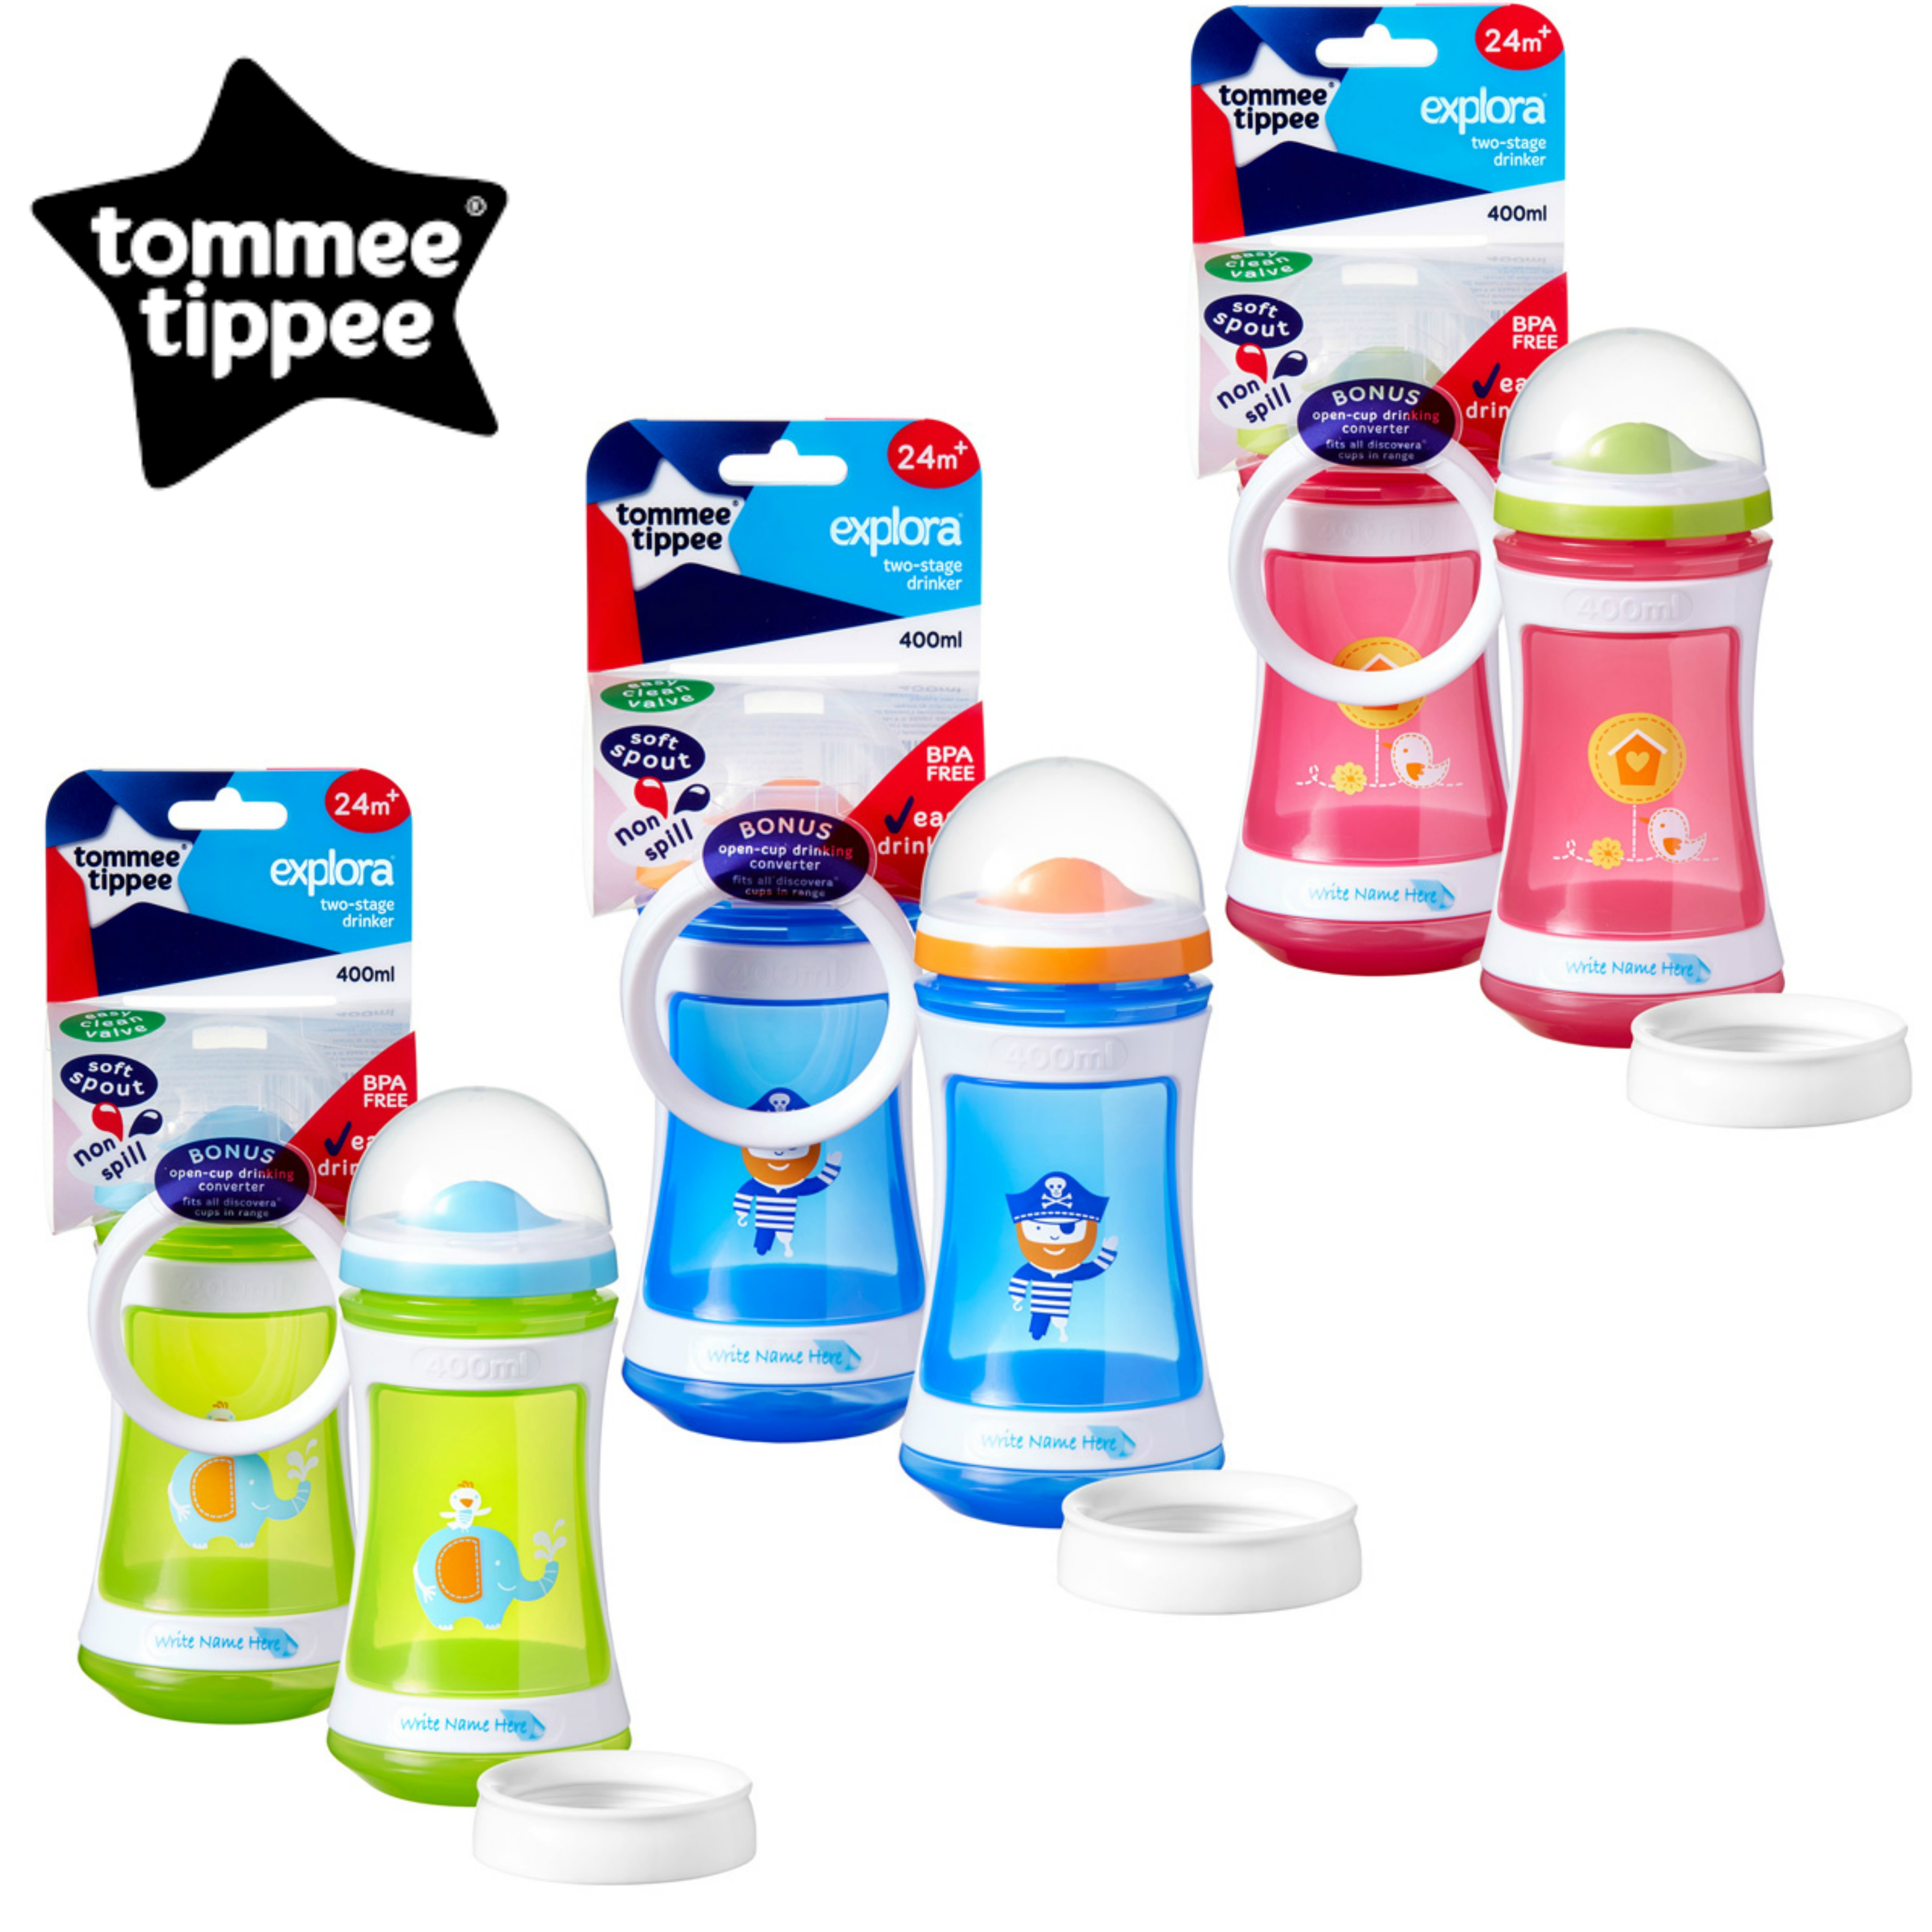 Tommee Tippee Discovera 2 Stage Drinker 24m+ | 400ml | Choose Design & Colour | New